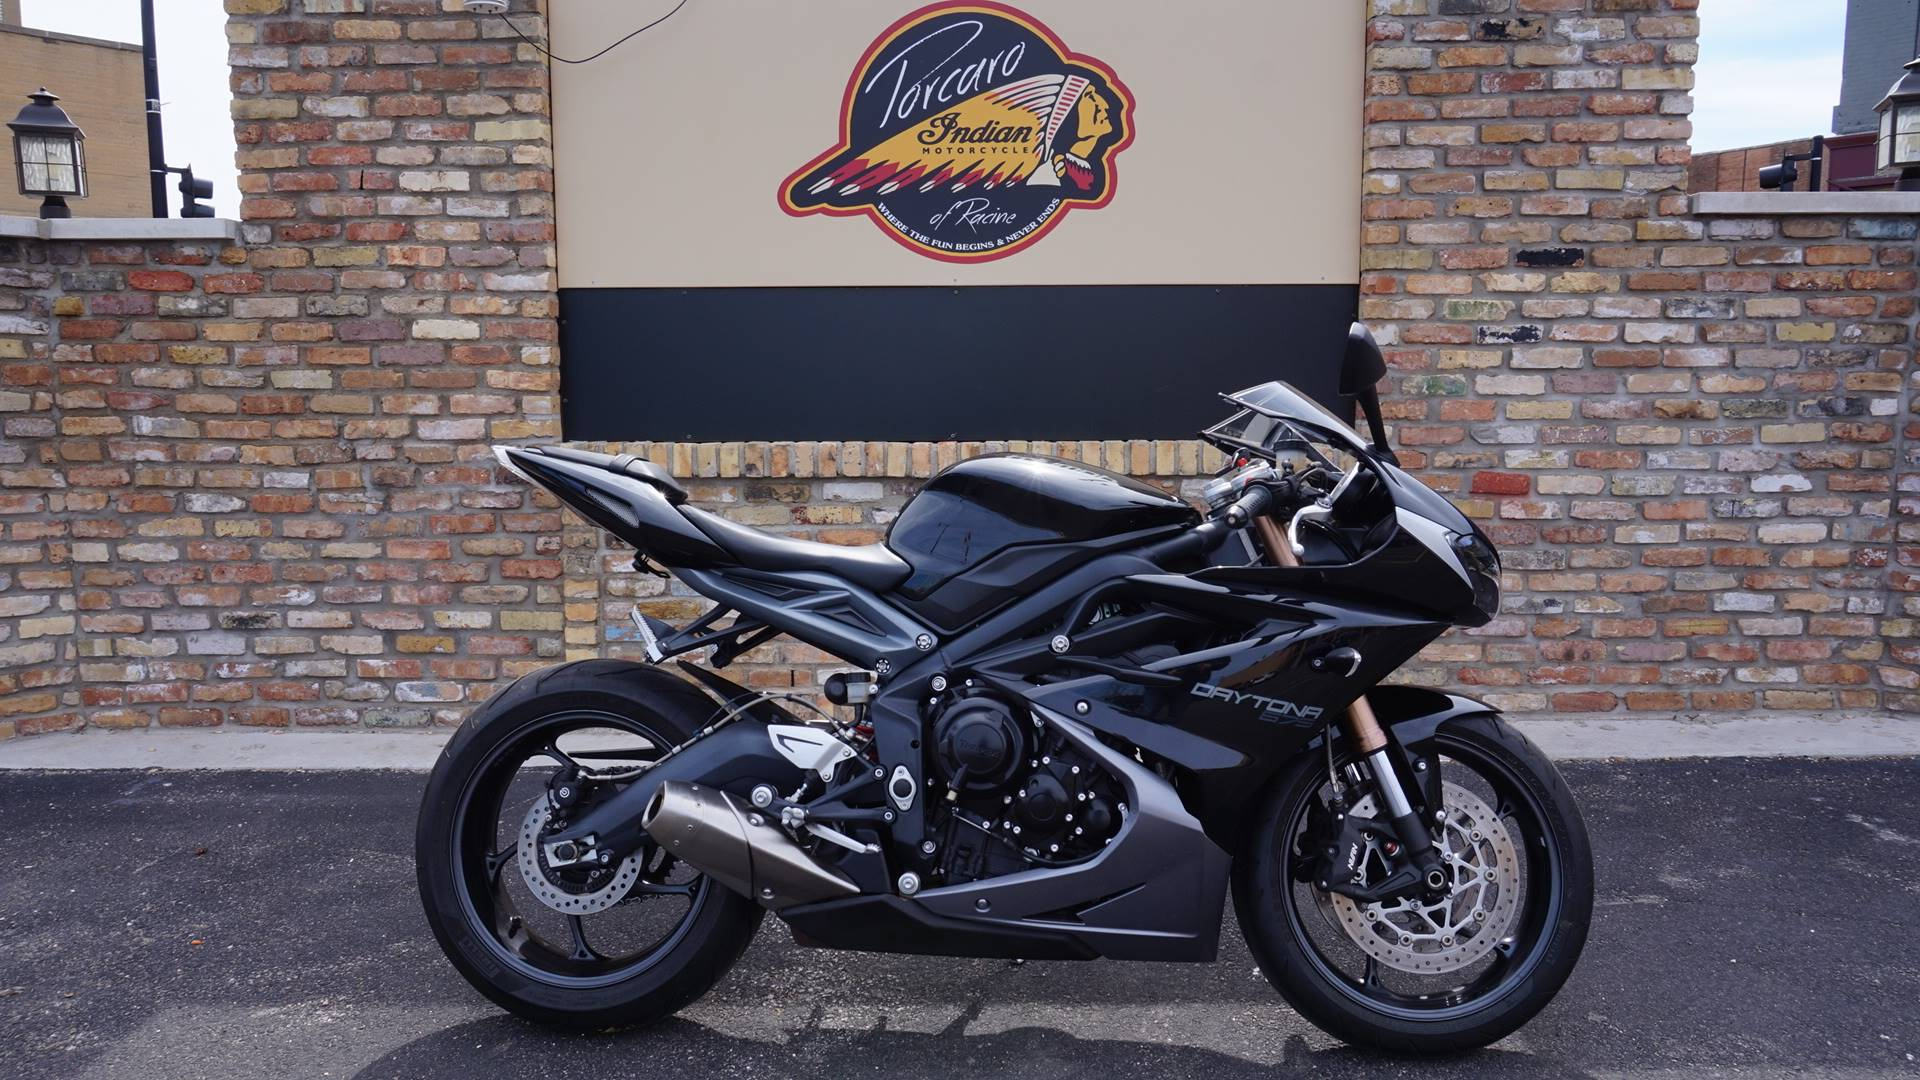 Used 2013 Triumph Daytona 675 Motorcycles In Racine Wi Stock